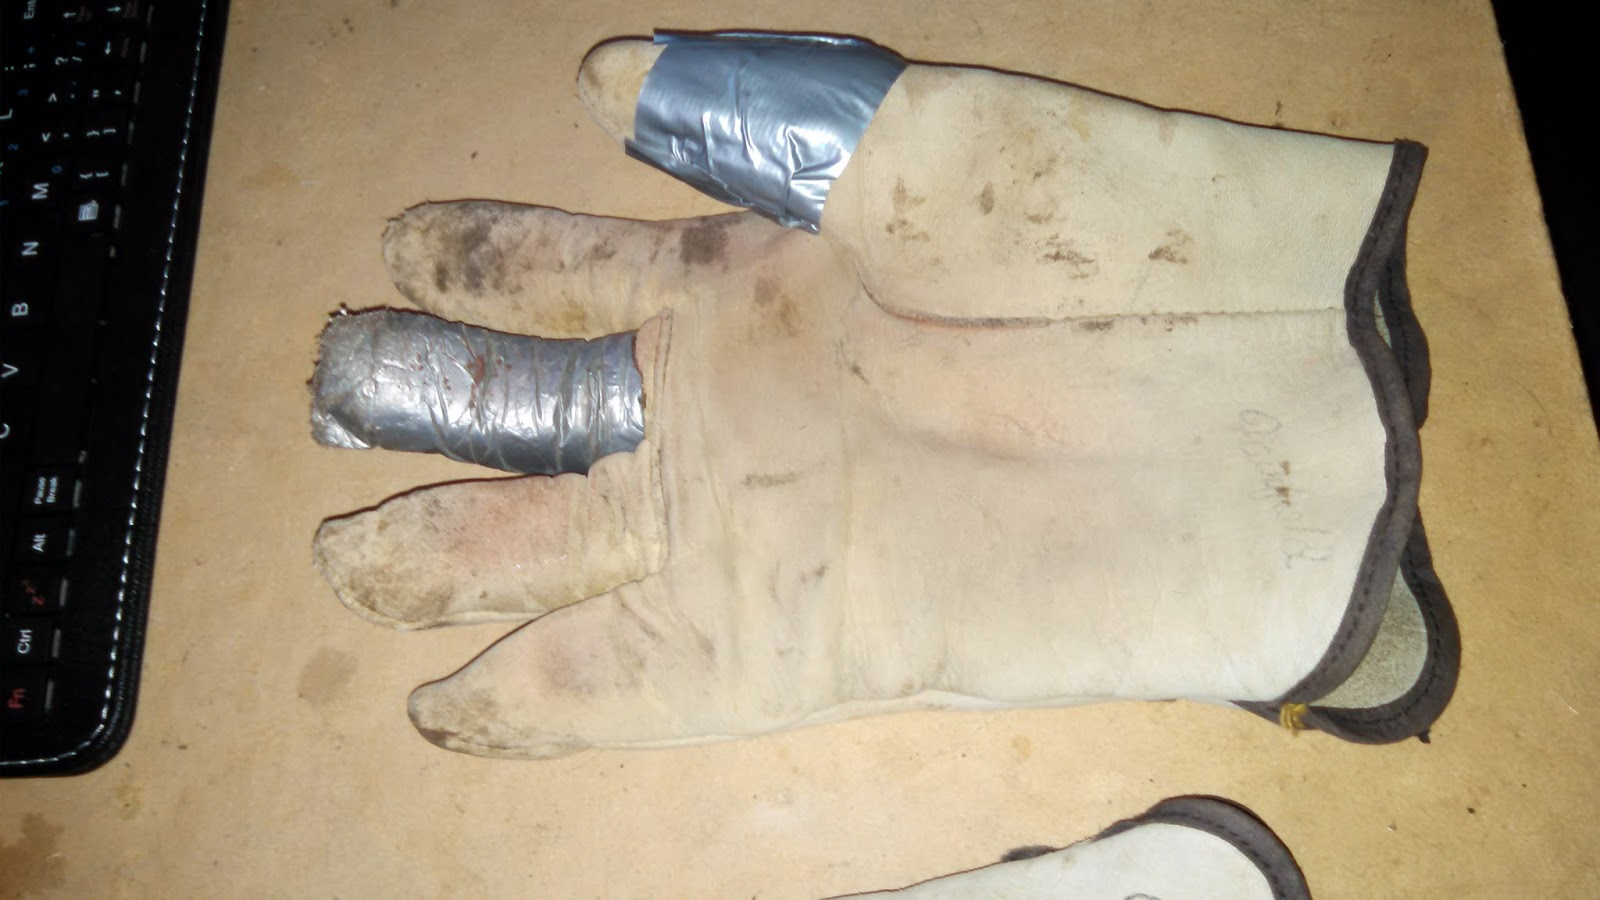 Use Duct Tape to Repair Gloves